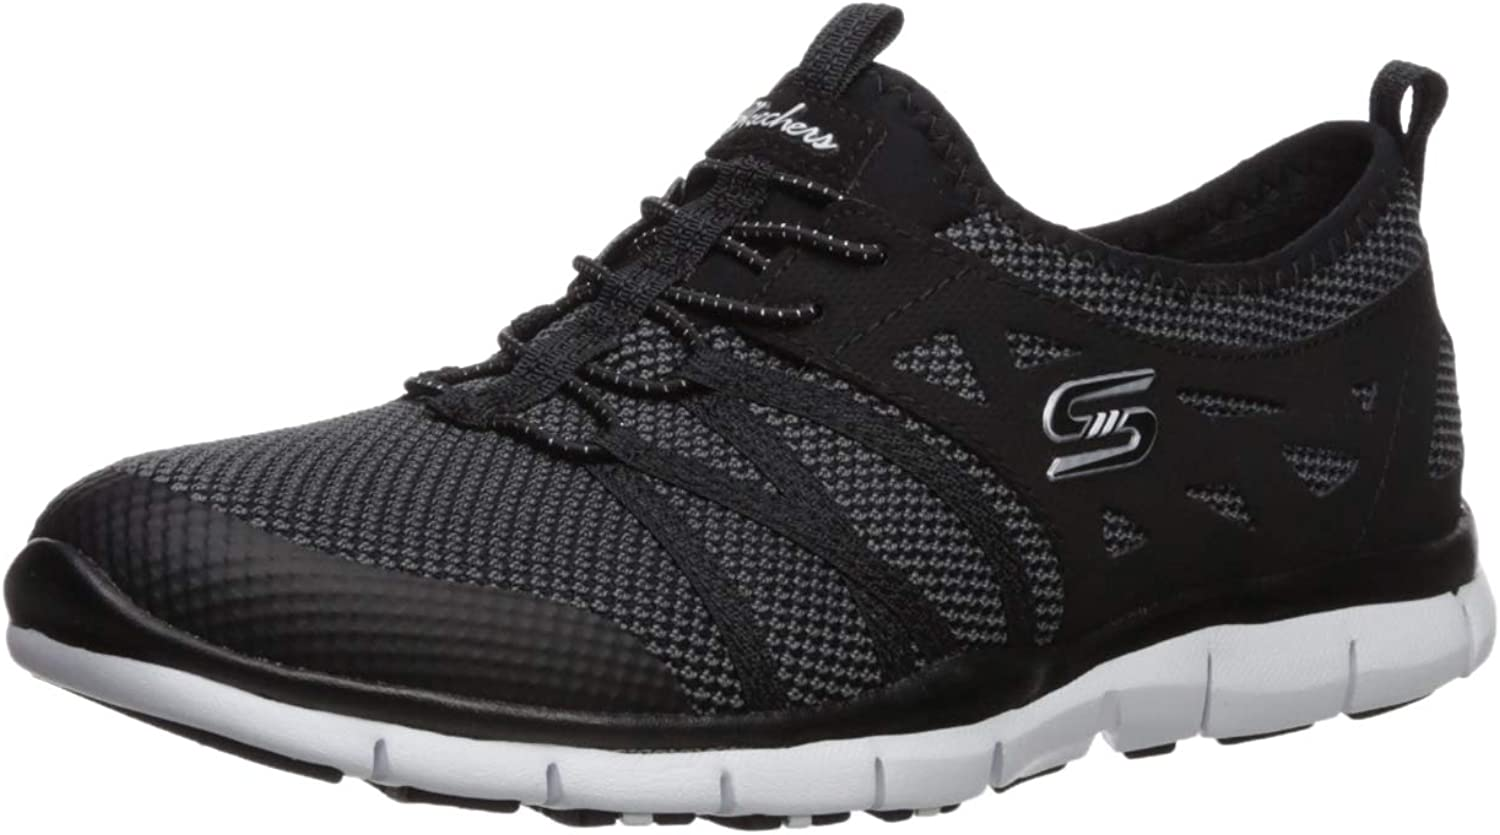 Skechers Womens Gratis - What A Sight Slip-On